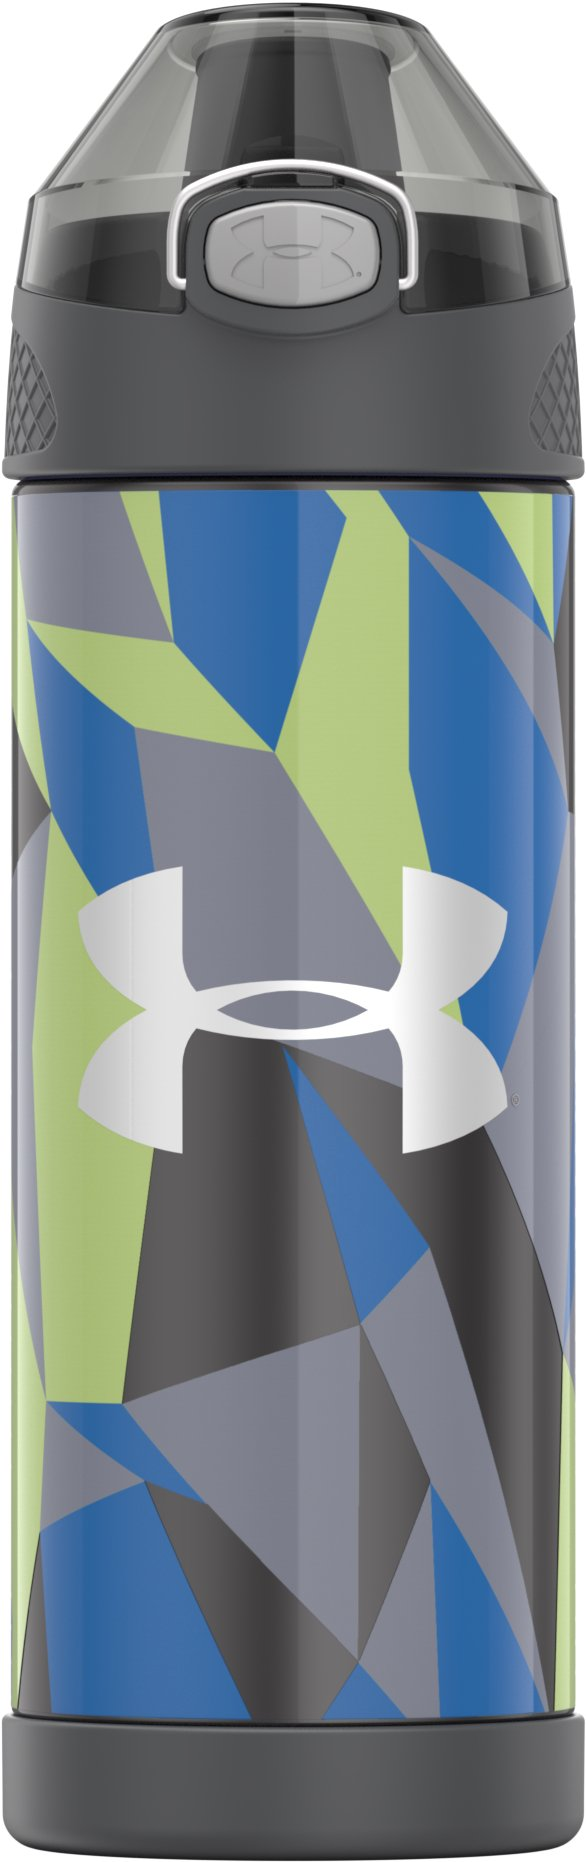 Beyond 16 oz. Vacuum Insulated Stainless Steel Water Bottle, Gray, undefined